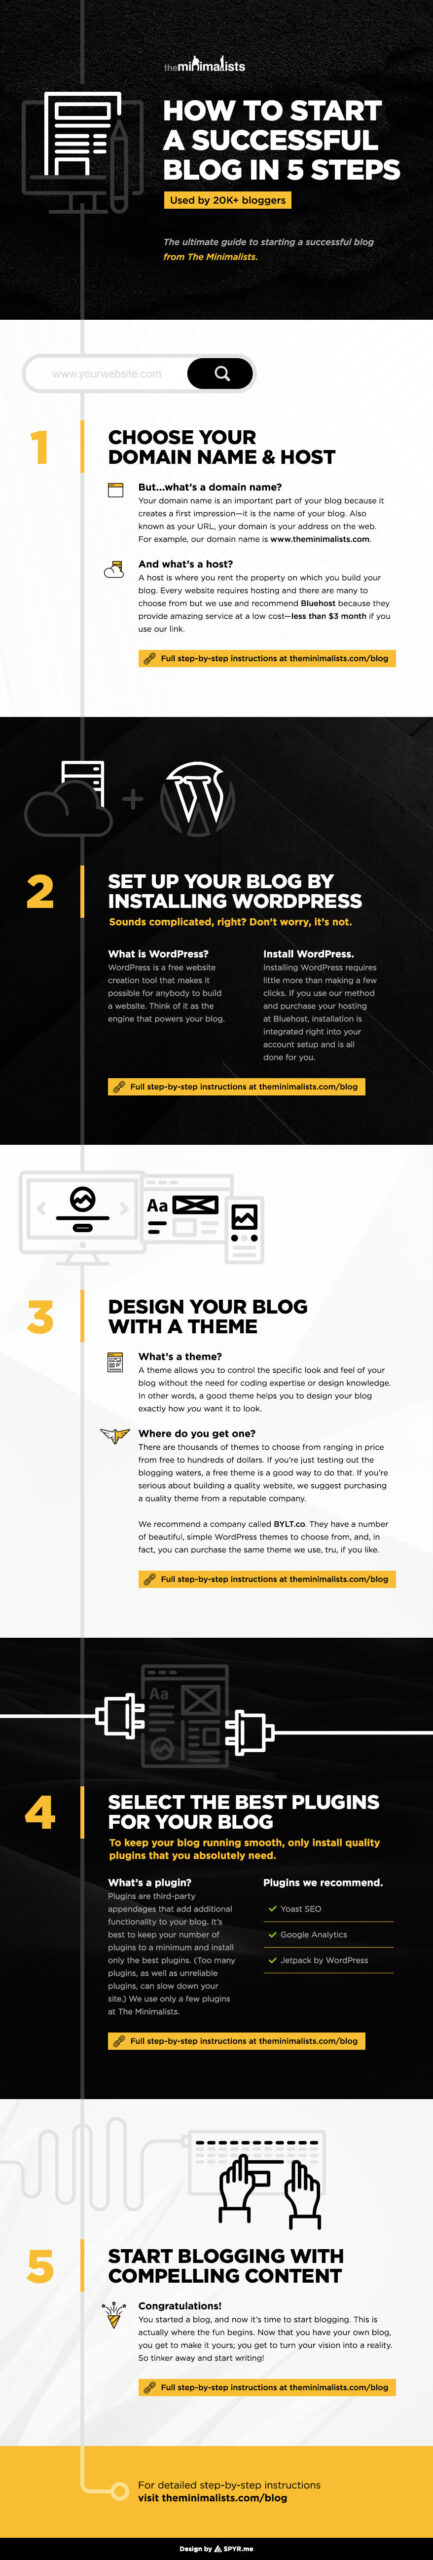 blogging-to-the-bank-3-0-all-beginning-bloggers-should-start-here